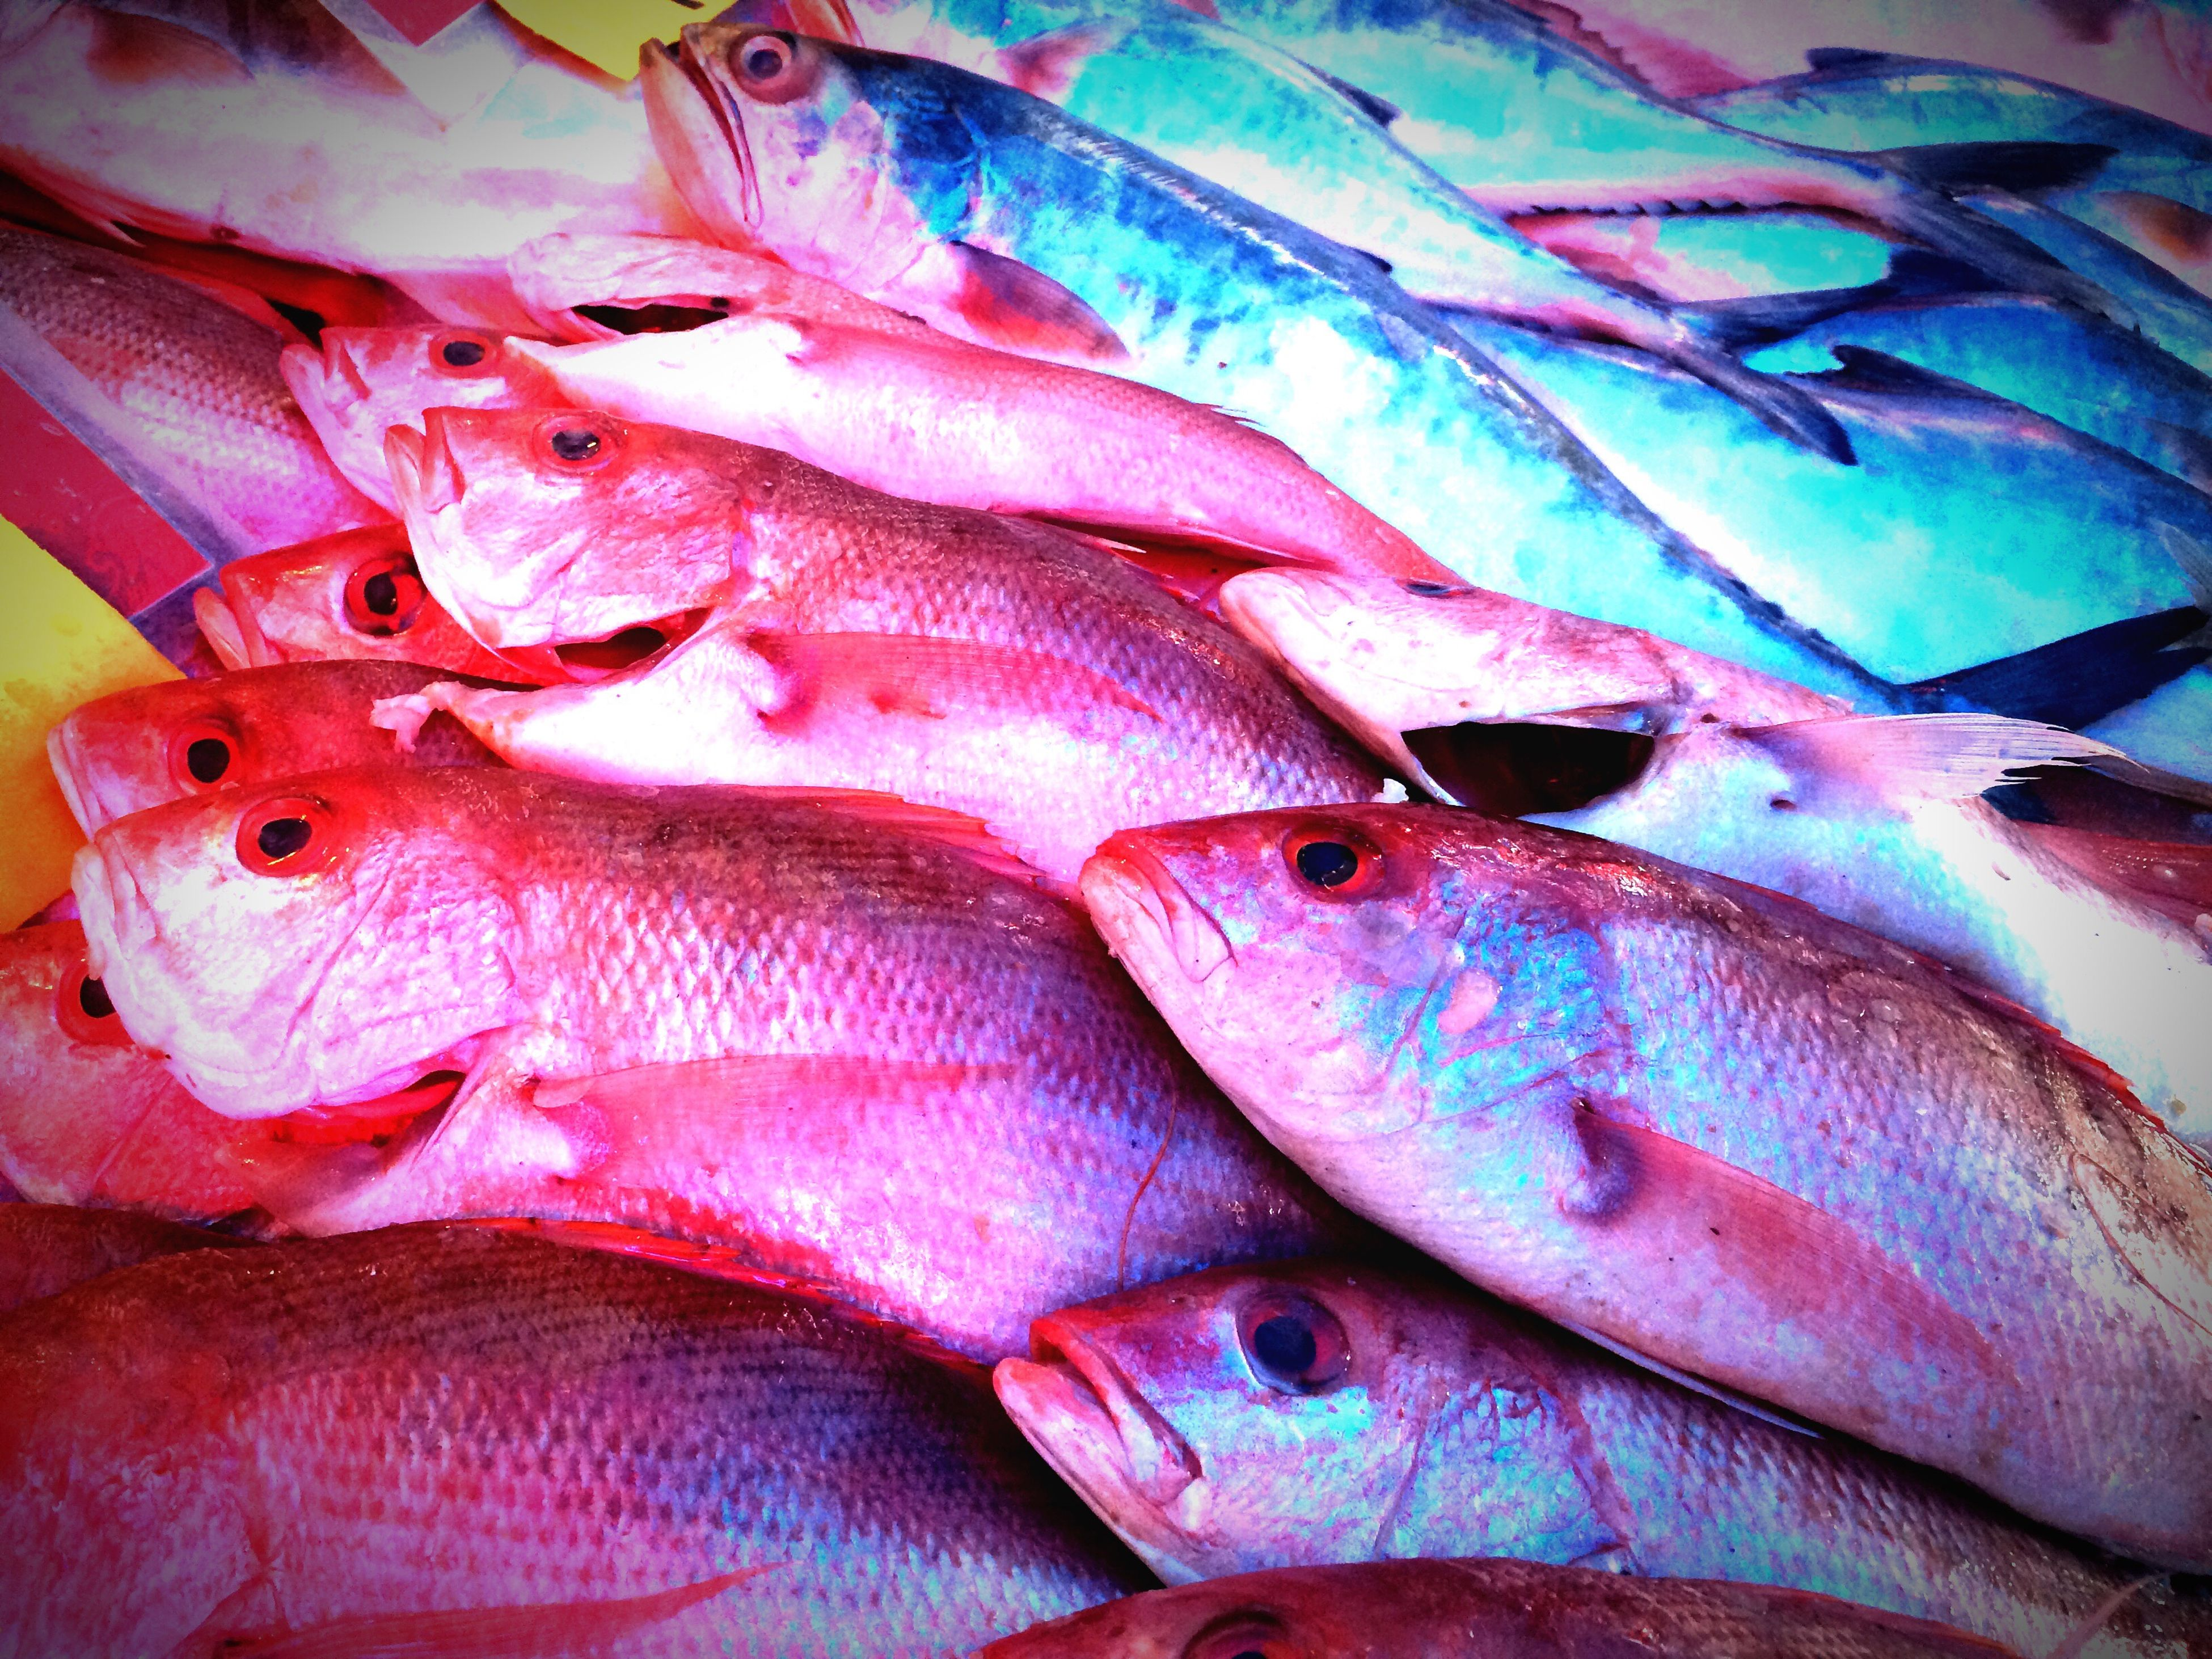 full frame, backgrounds, for sale, fish, retail, variation, abundance, choice, large group of objects, market stall, market, sale, indoors, multi colored, close-up, seafood, dead animal, fish market, still life, raw food